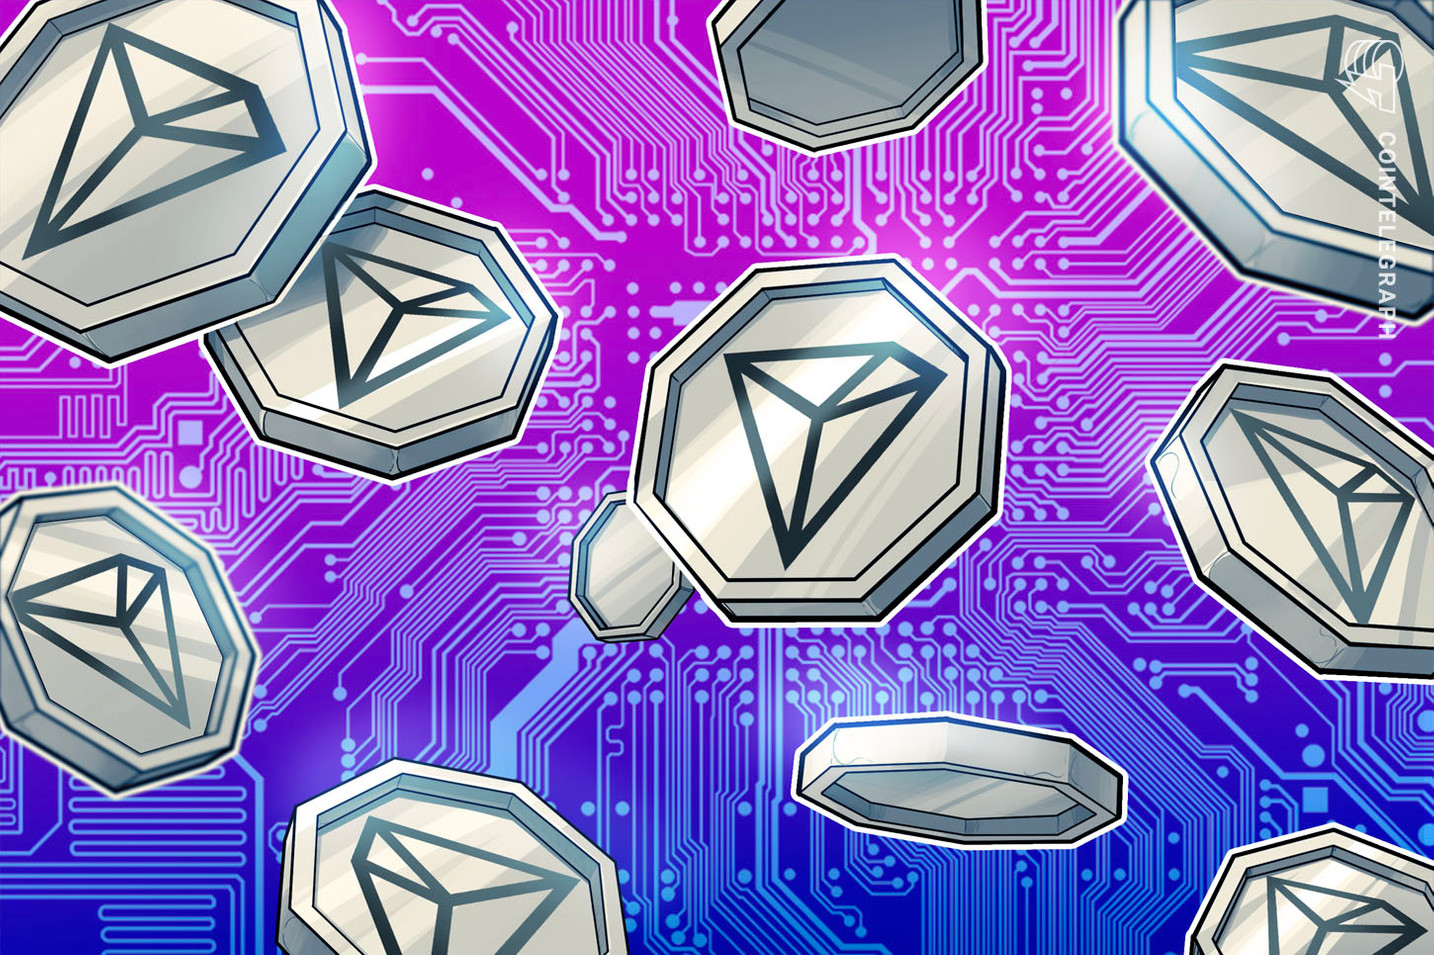 Tron Partnered With Metal Pay to Allow Instant Buying of TRX in the U.S.